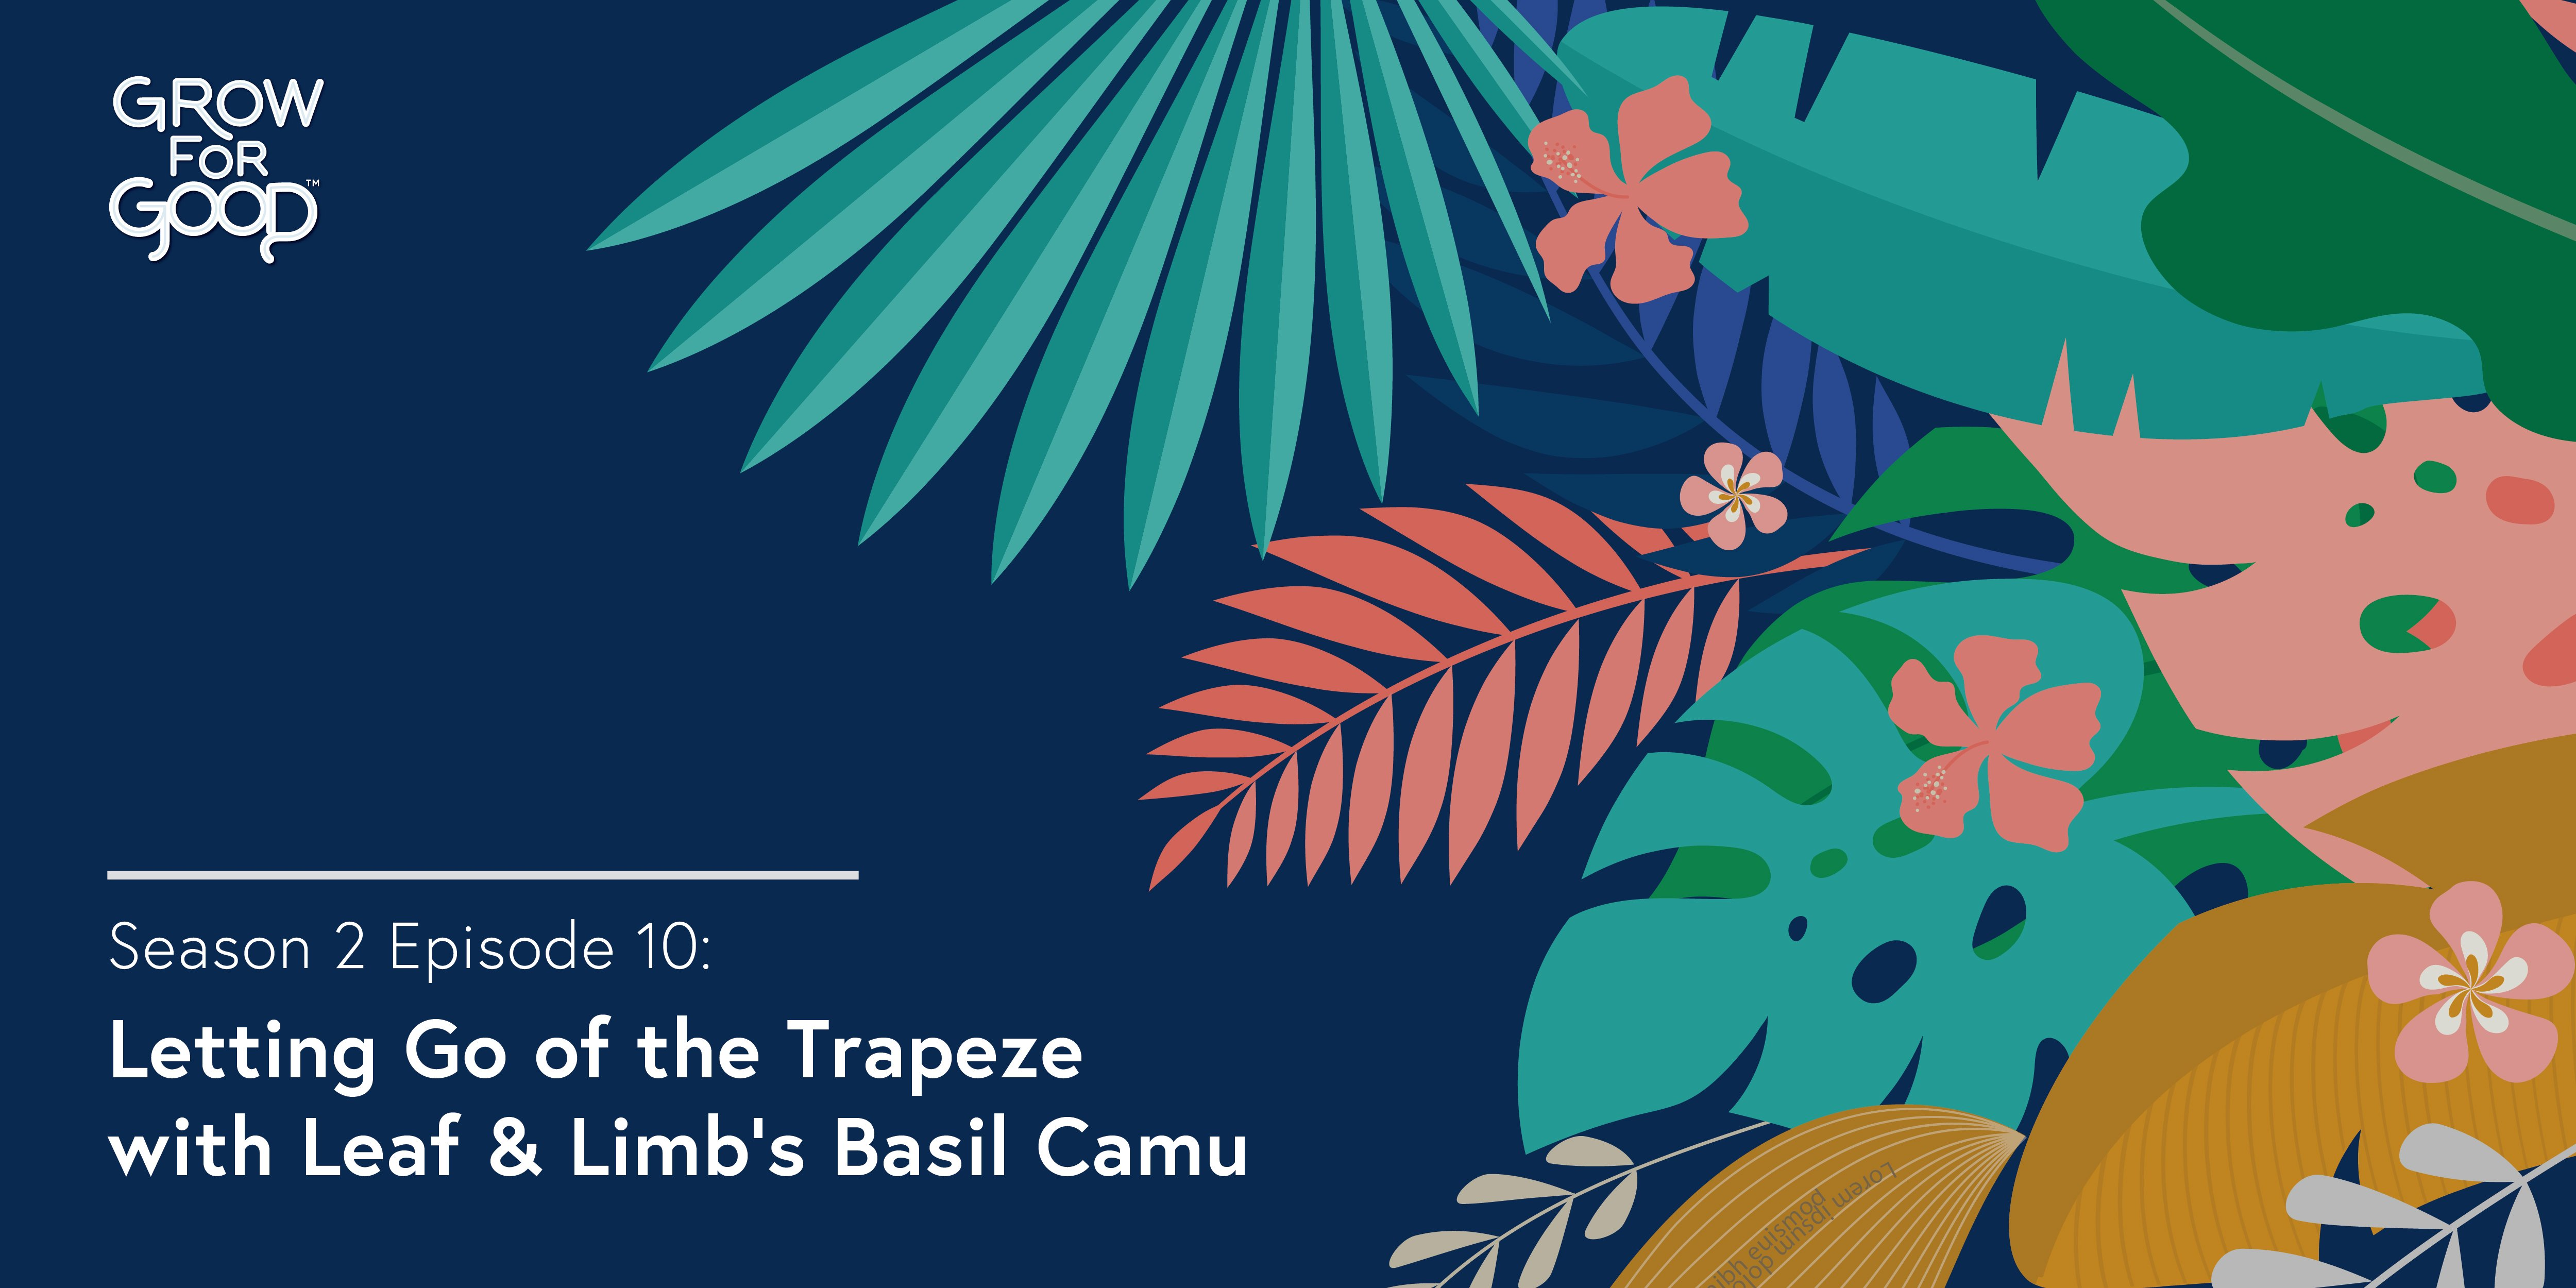 [Podcast] 'Grow For Good™' S02 E10: Letting Go of the Trapeze with Leaf & Limb's Basil Camu